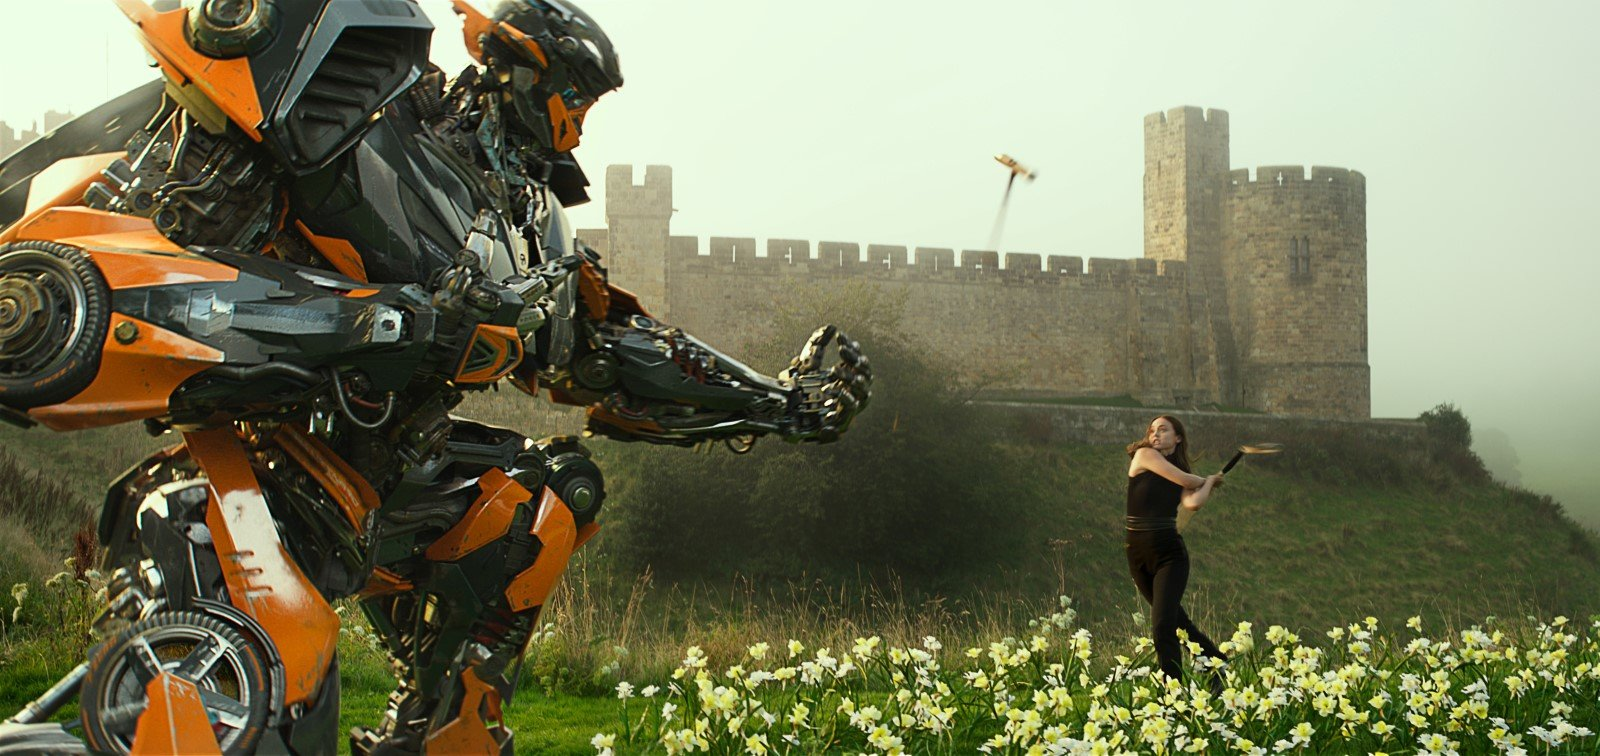 Left to right: Hot Rod and Laura Haddock as Viviane Wembly in TRANSFORMERS: THE LAST KNIGHT, from Paramount Pictures.